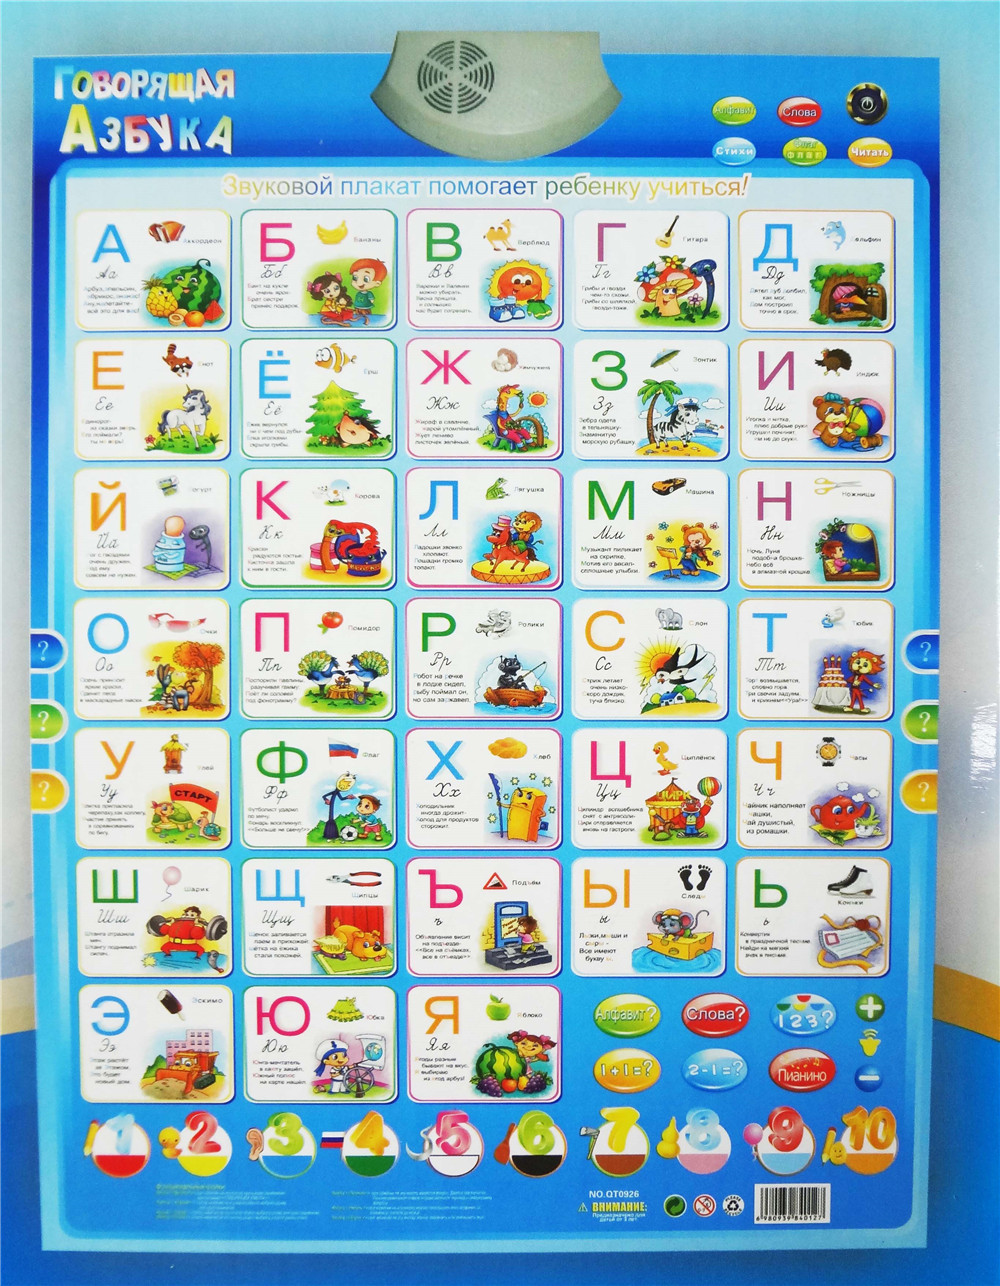 Stock!!Russian language Learning & Education baby toy Alphabet Music Learning Machine Phonic Wall Hanging Chart with Retail box(China (Mainland))